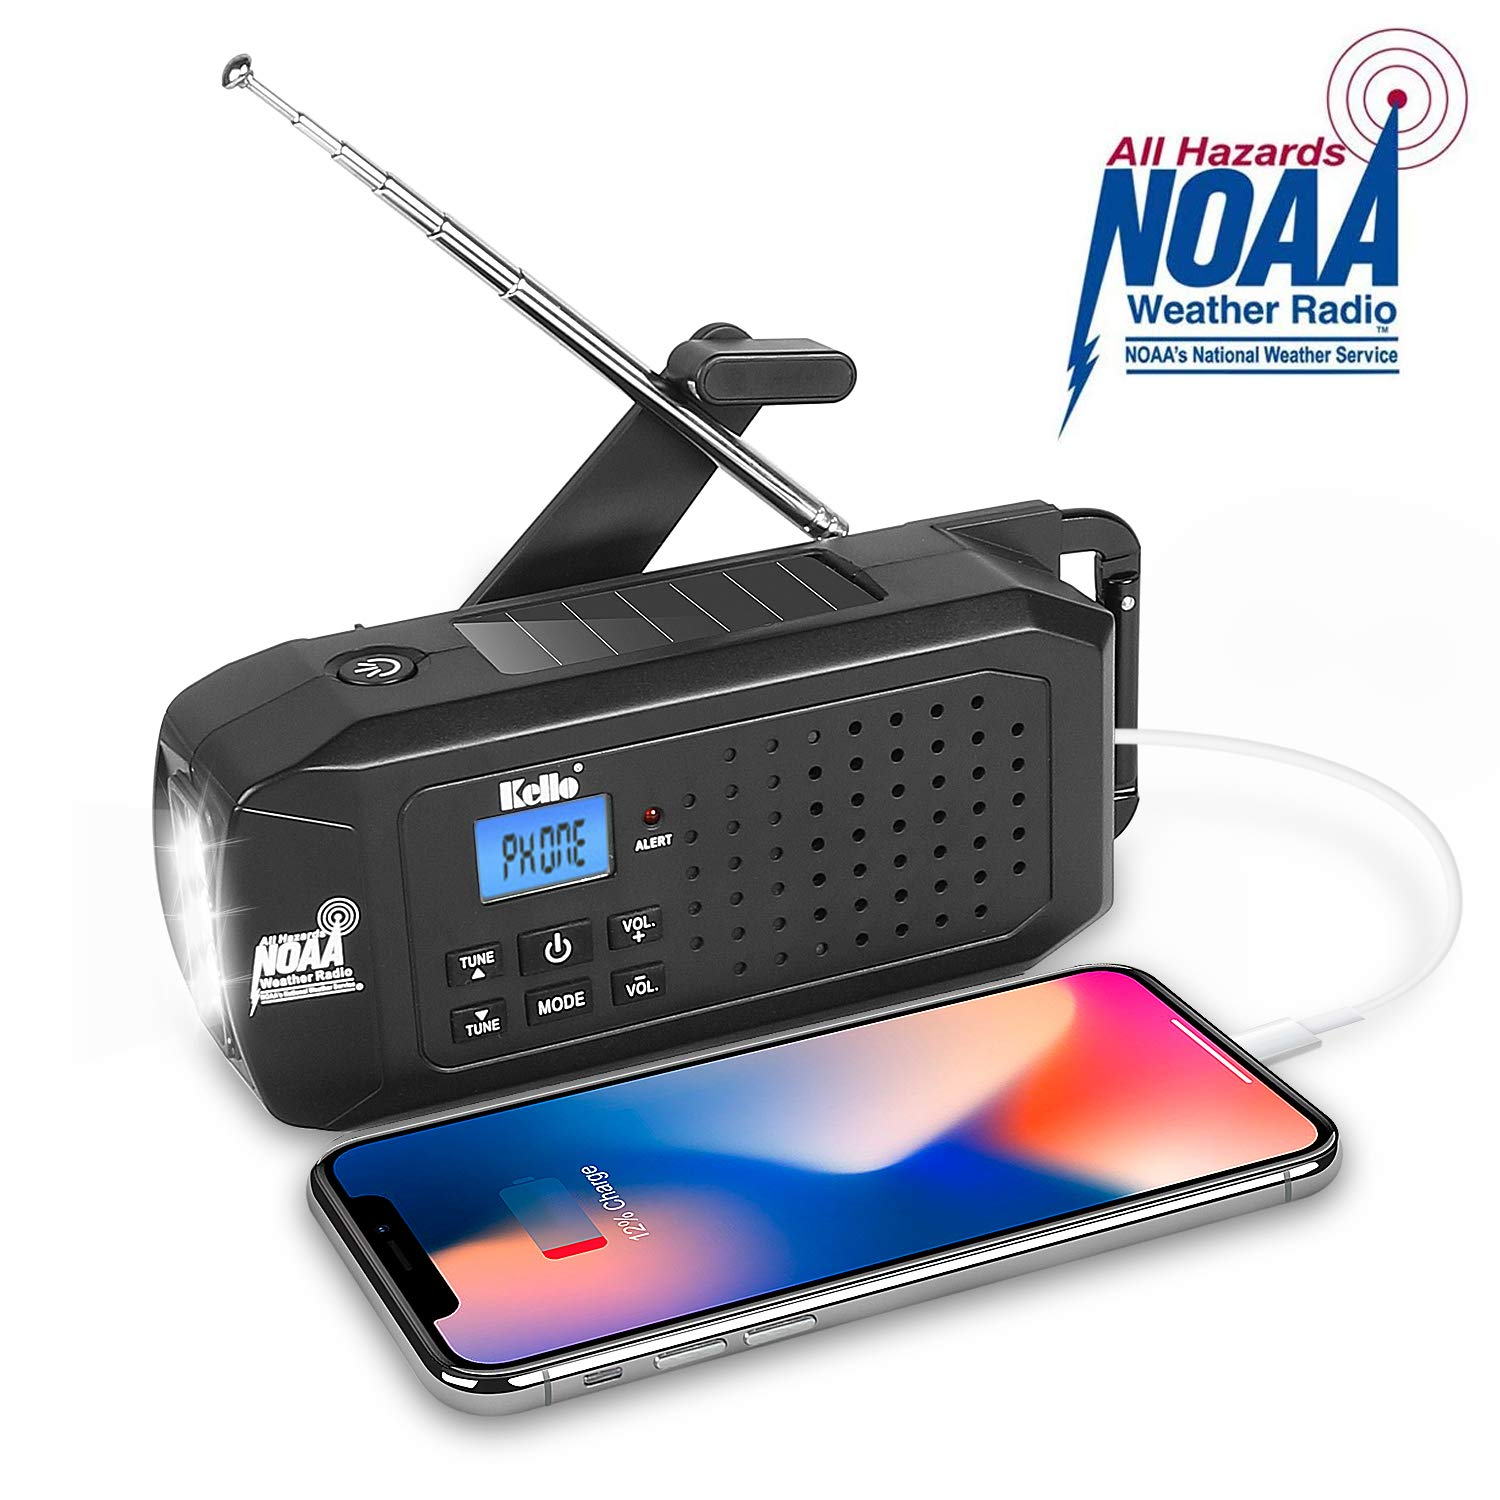 KELLO Emergency Solar Hand Crank Portable Radio, NOAA Weather Radio for Household and Outdoor Emergency with AM/FM/SW, LED Flashlight,2200mAh Power Bank USB Charger and SOS Alarm by Kello